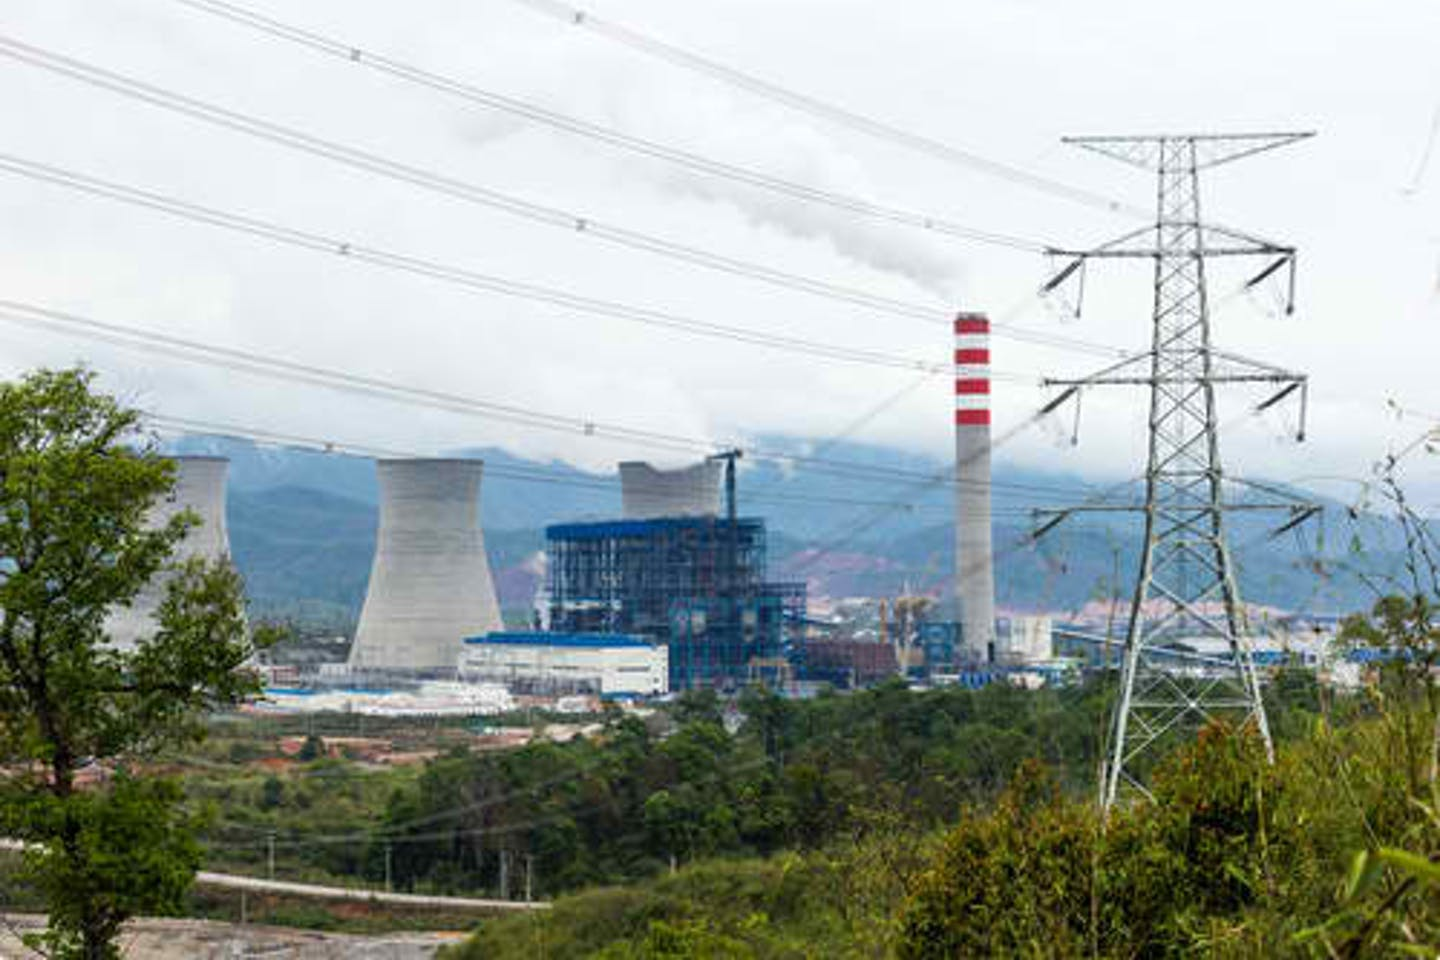 laos power plant emissions